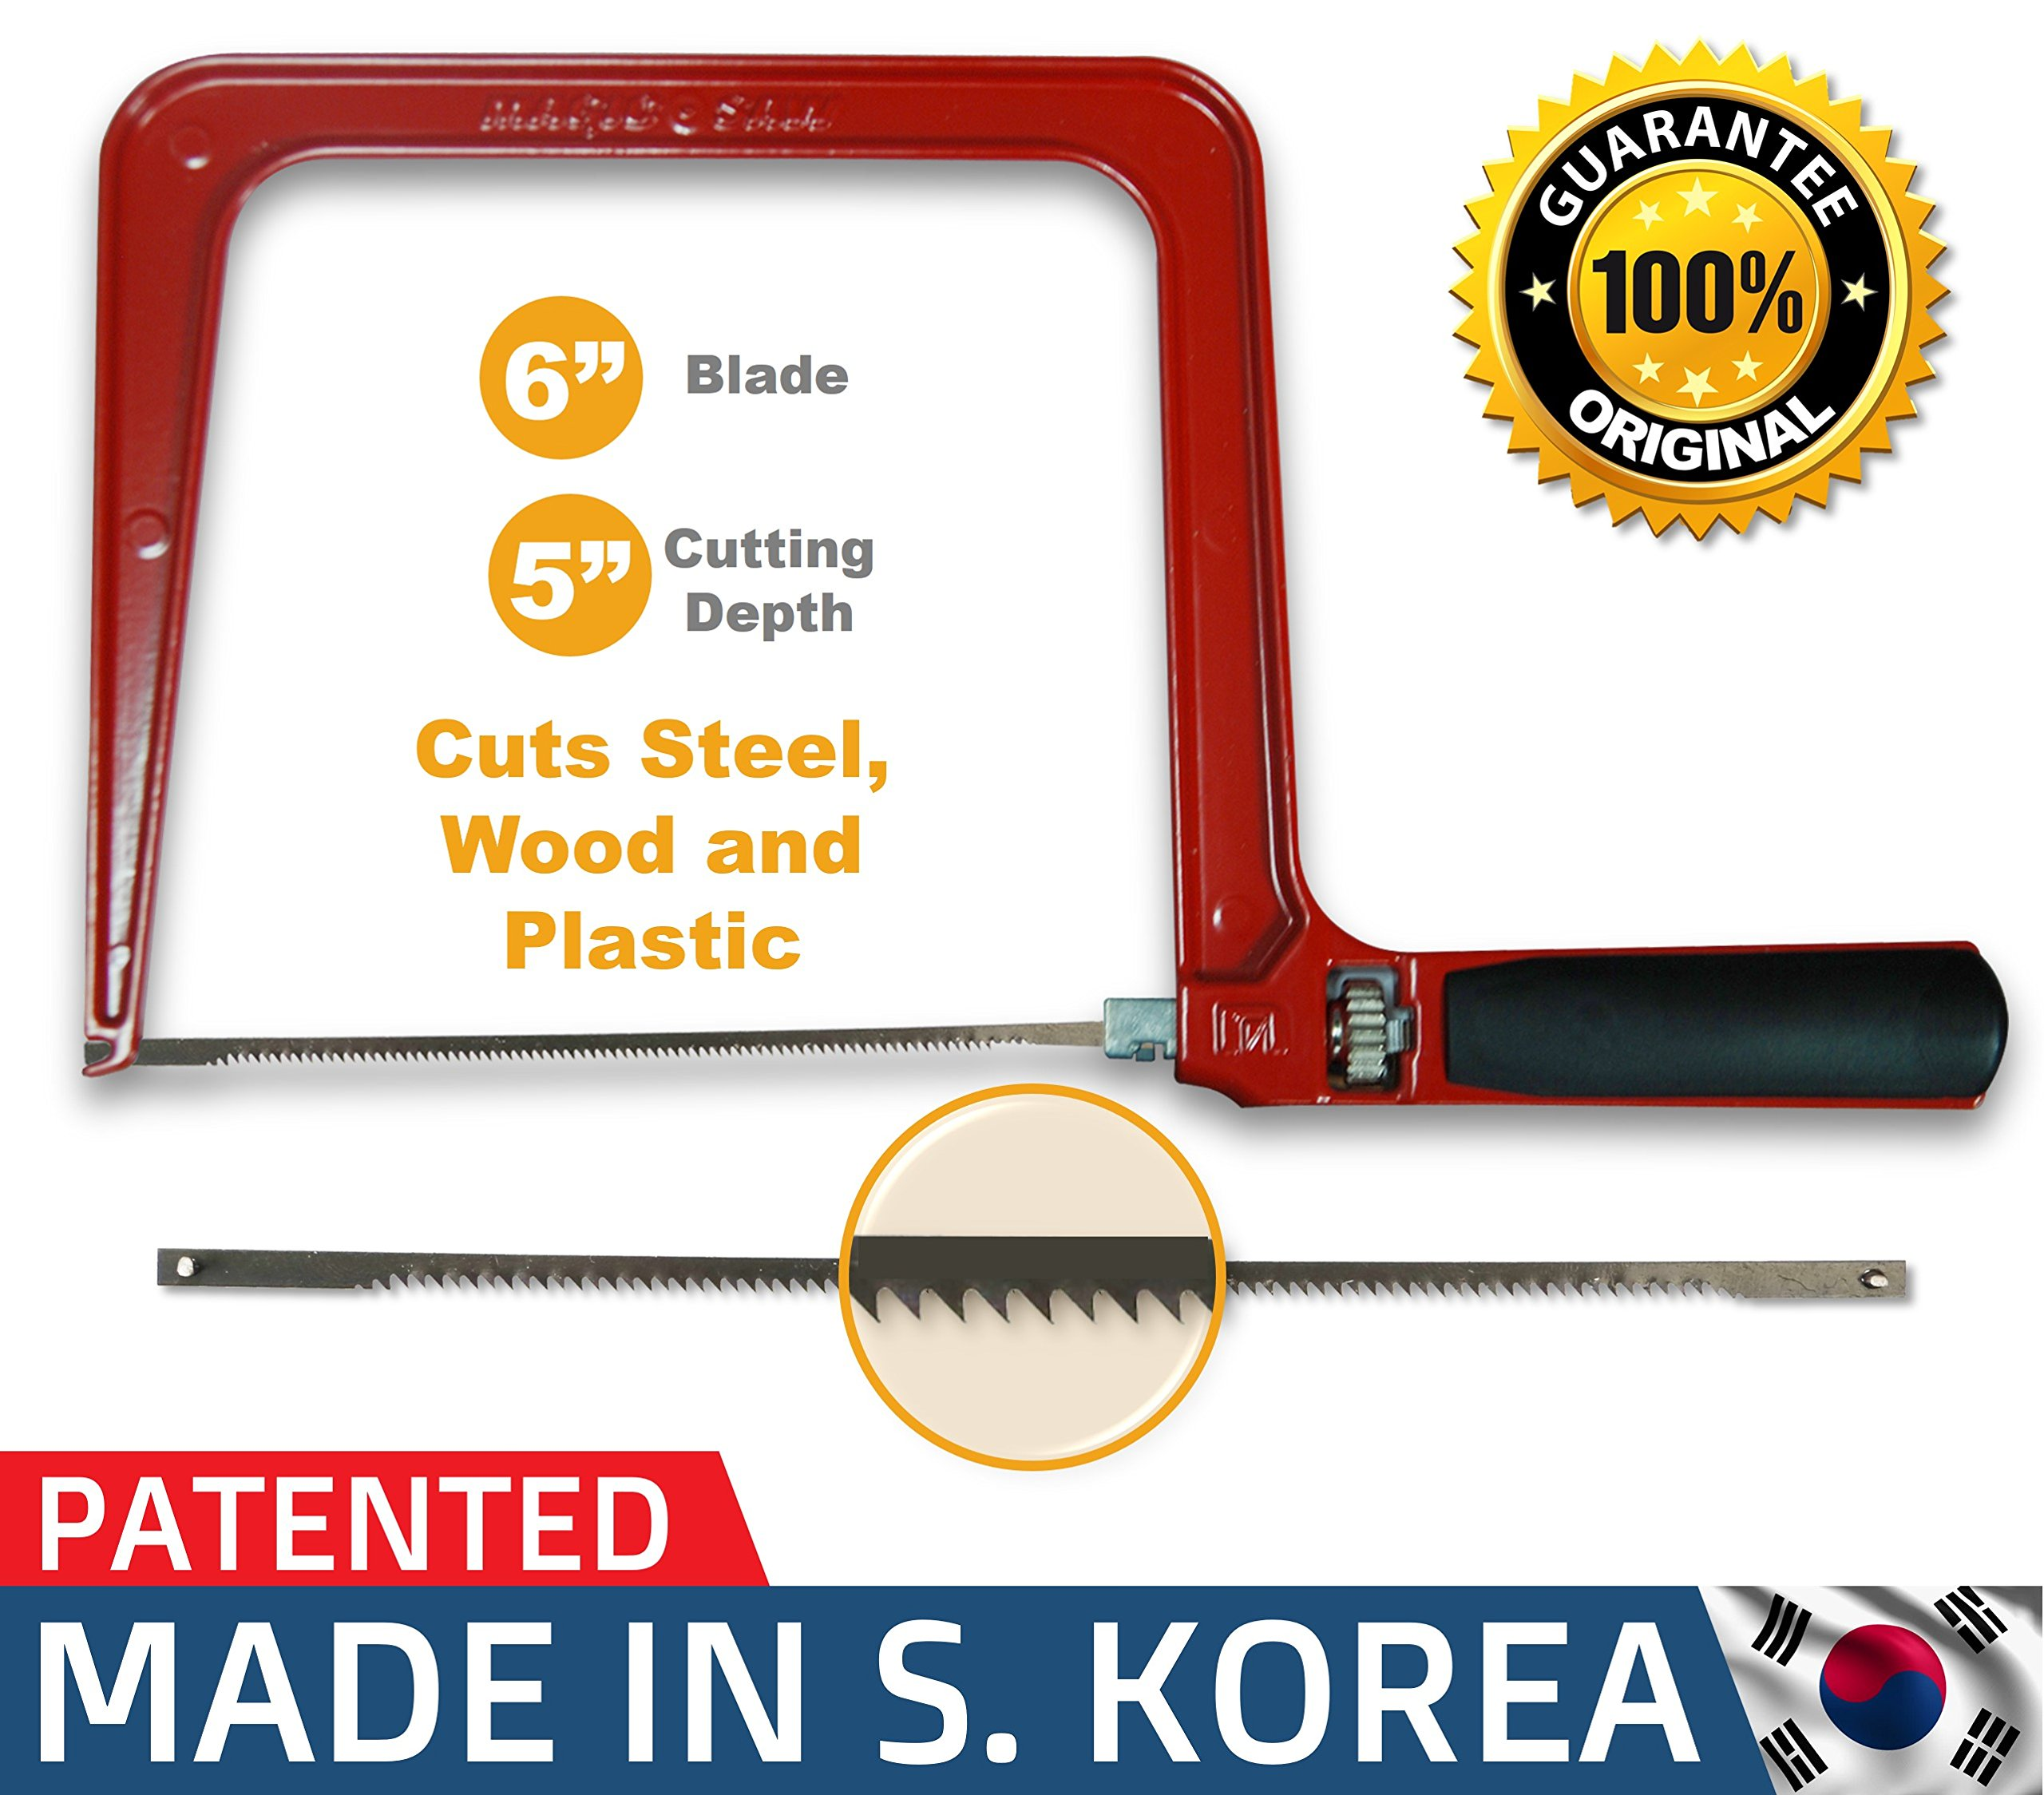 Original Magic Coping Saw with 6 inch High Carbon Steel Pins Blades, a Heavy Duty H shape Metal Frame Works as Fret Saw, Hacksaw, and Pruning Saw & Suitable to Cut Wood, Plastic, PVC, Aluminum, Nails by Amazing Tools (Image #1)